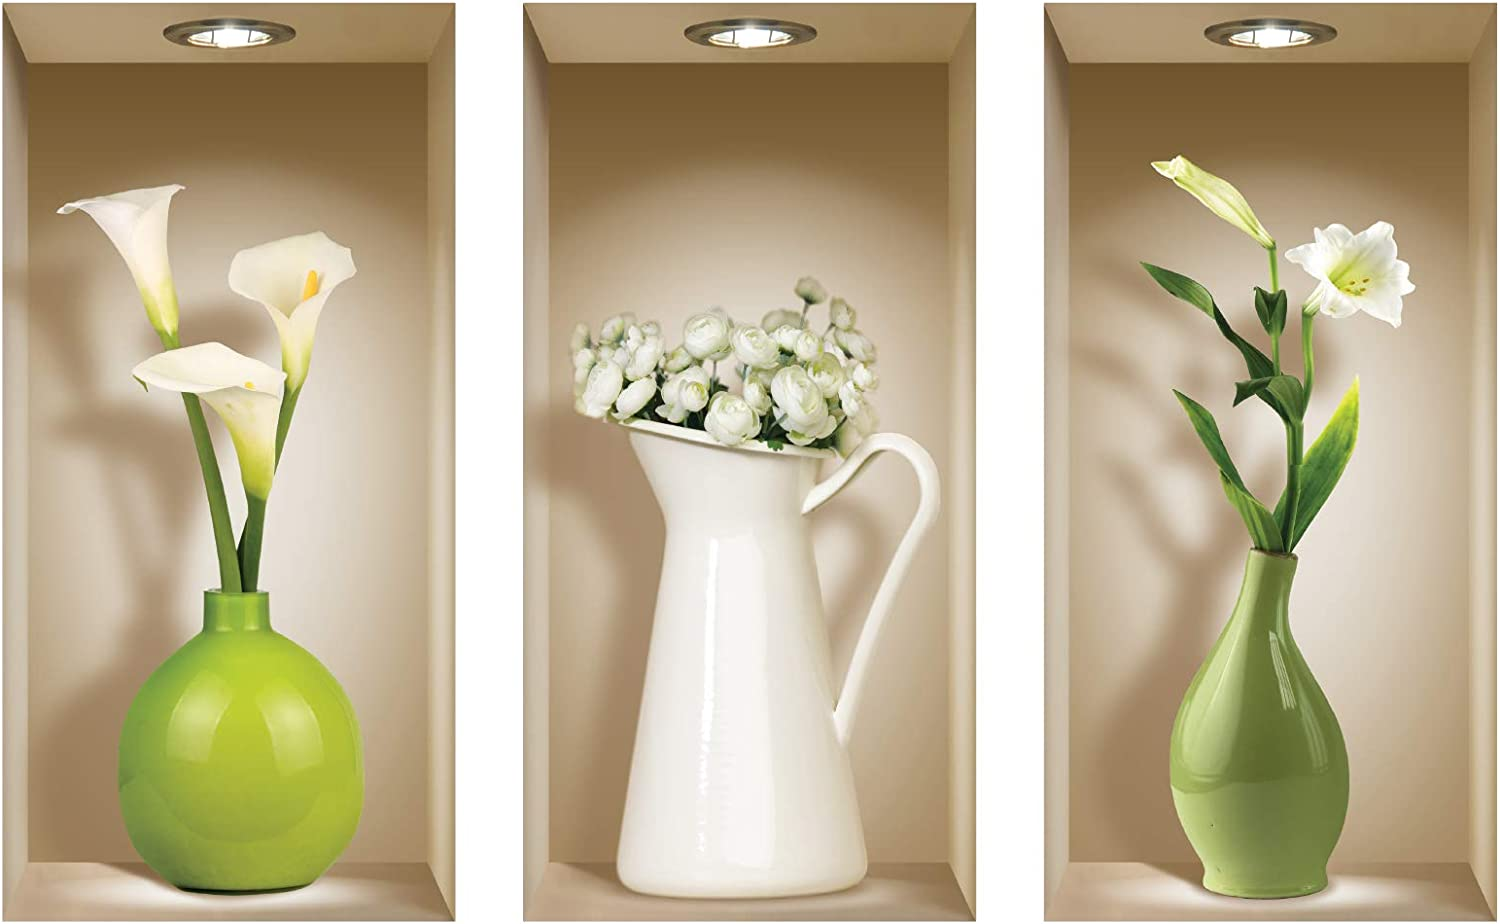 the Nisha Art Magic 3D Vinyl Removable Wall Sticker Decals DIY, Set of 3, Green and White Vases